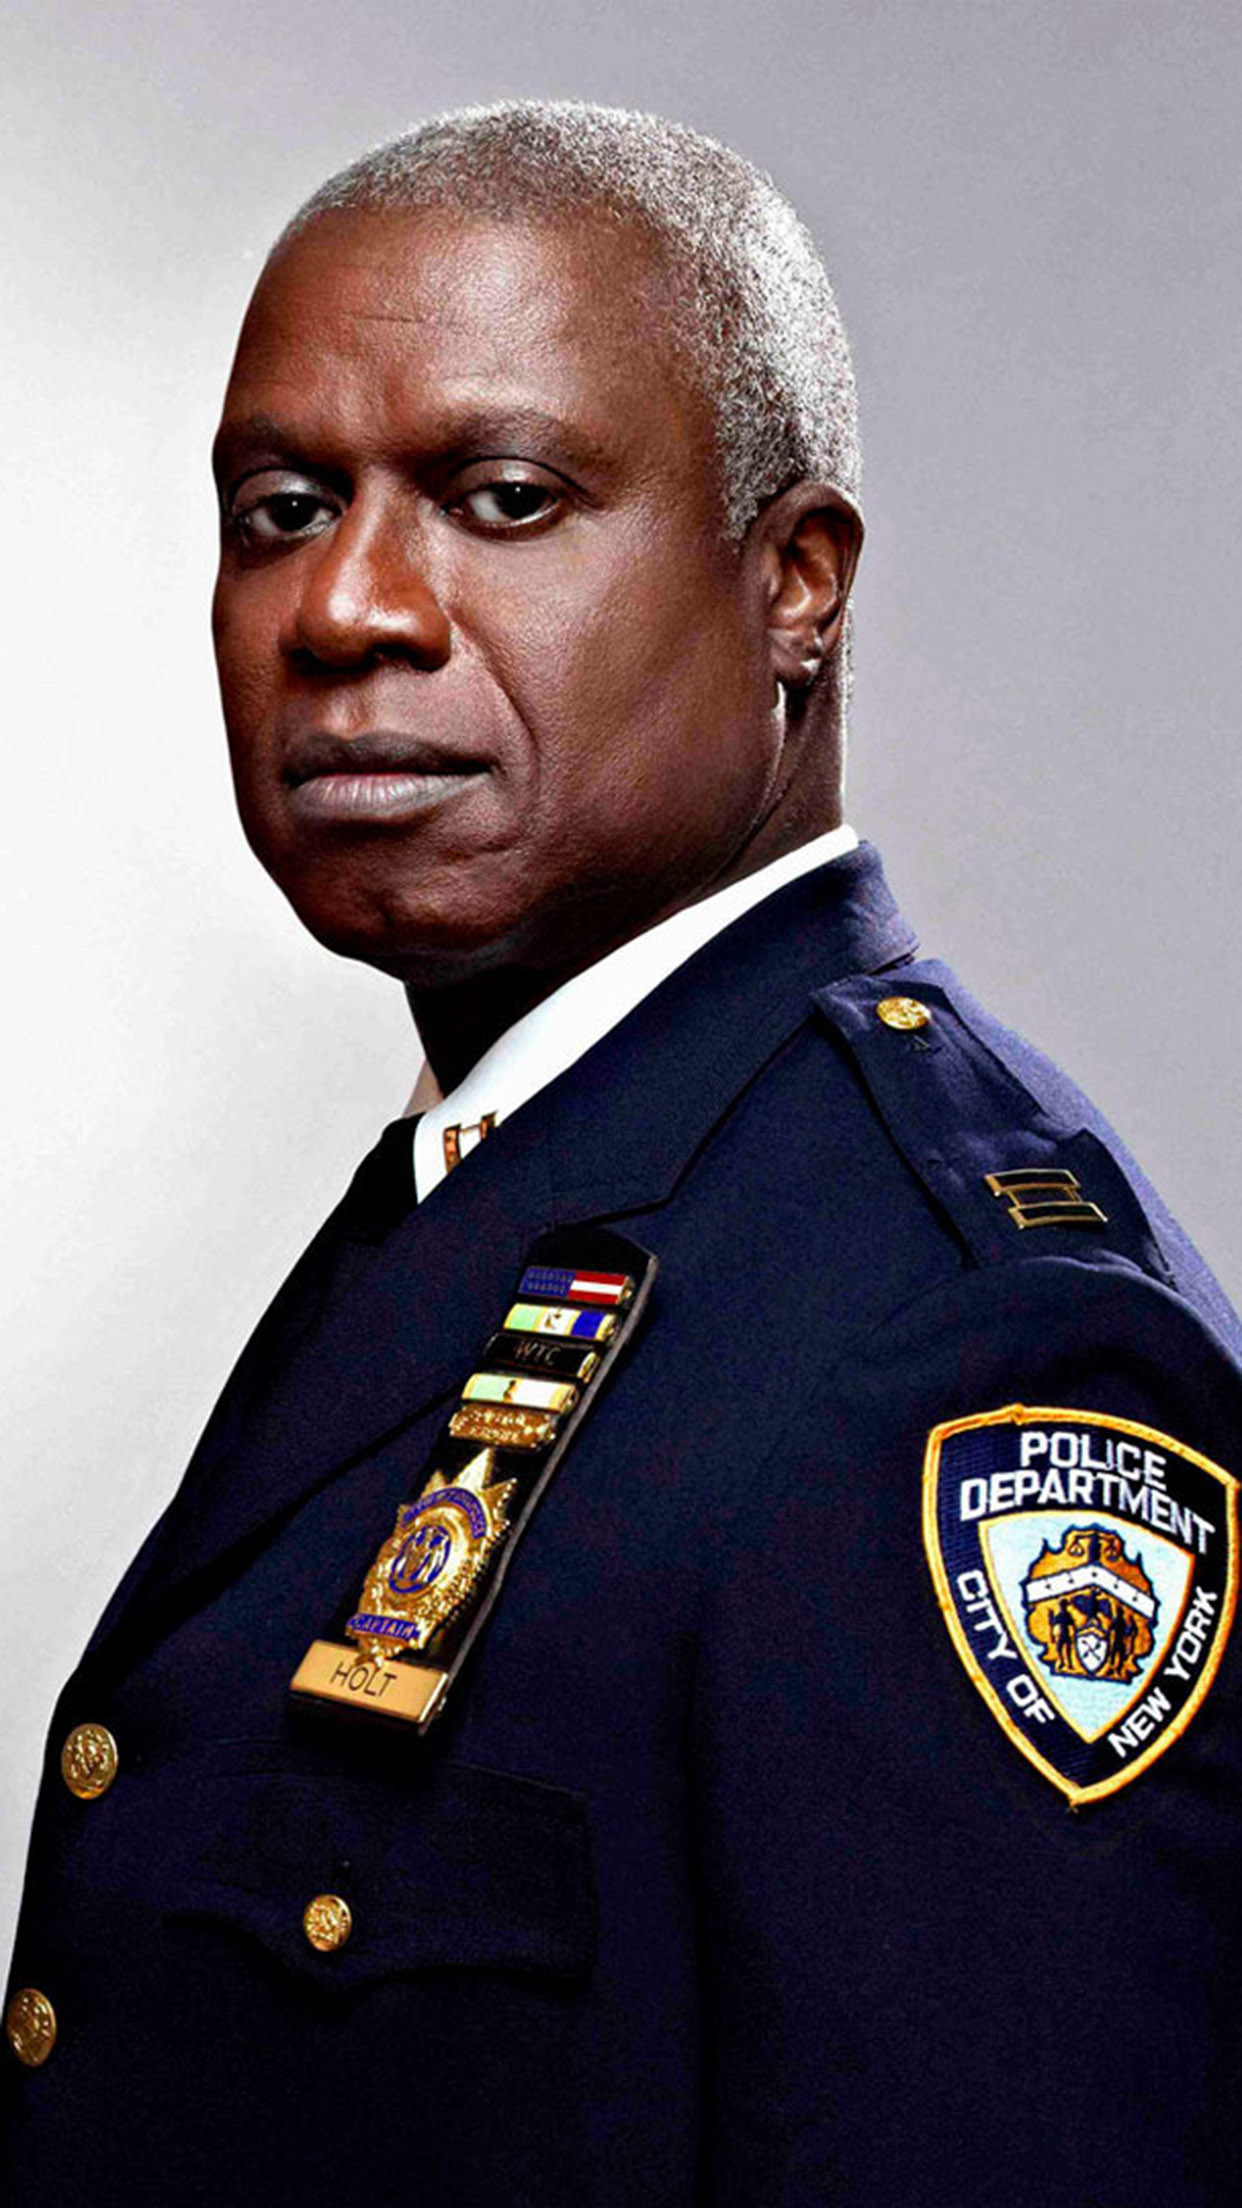 Brooklyn Nine Nine Andre Braugher 3Wallpapers iPhone Parallax 3Wallpapers : notre sélection de fonds d'écran du 01/12/2016